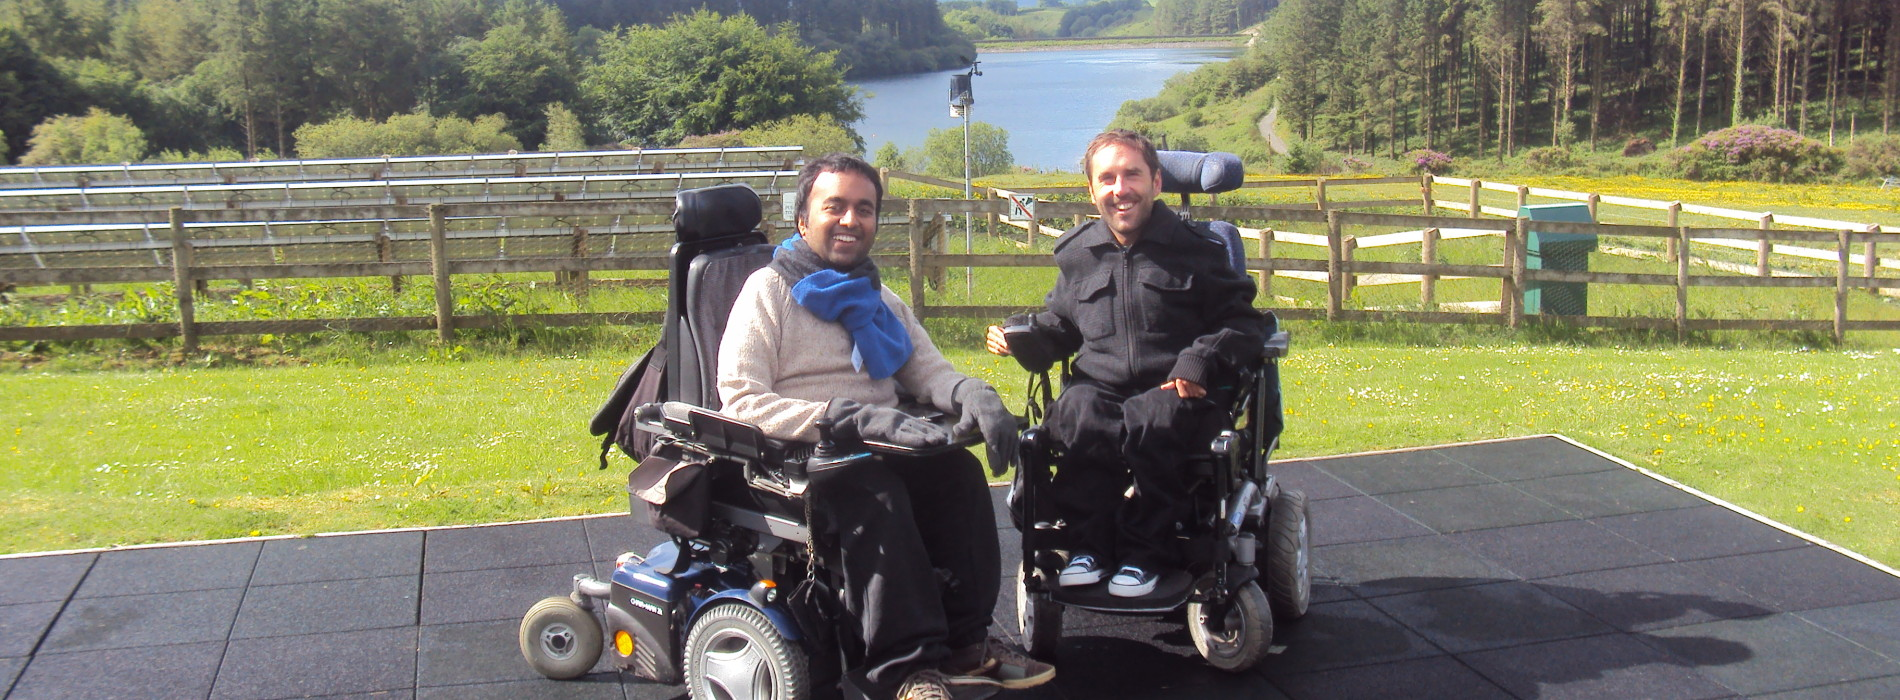 Accessible adventures in Exmoor with the Calvert Trust